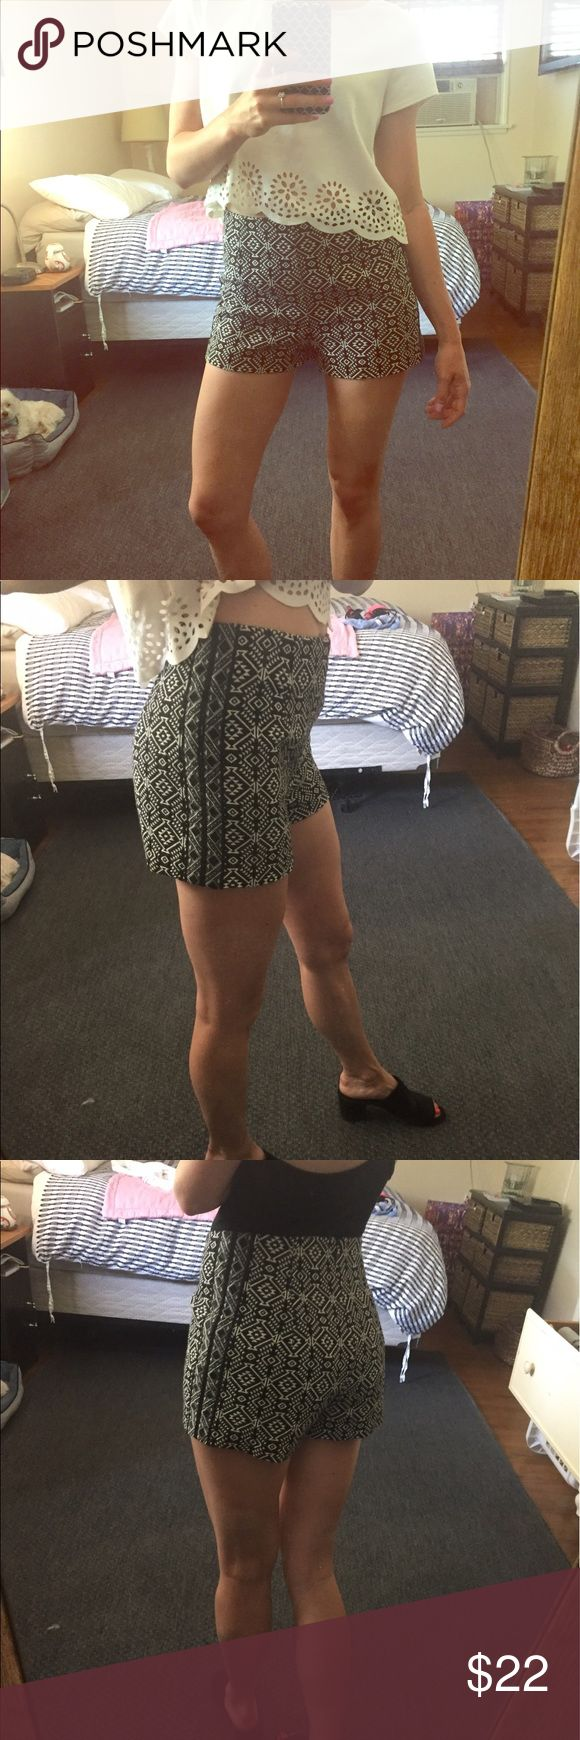 UO High waisted shorts High waisted Aztec-print shorts from Urban Outfitters! These shorts are a nice quality thickness, with a zipper in the back. Pair with a crop top to dress up or down! I have worn these to go out at night as well as to more casual daytime events. They always work!✨ Ecote Shorts